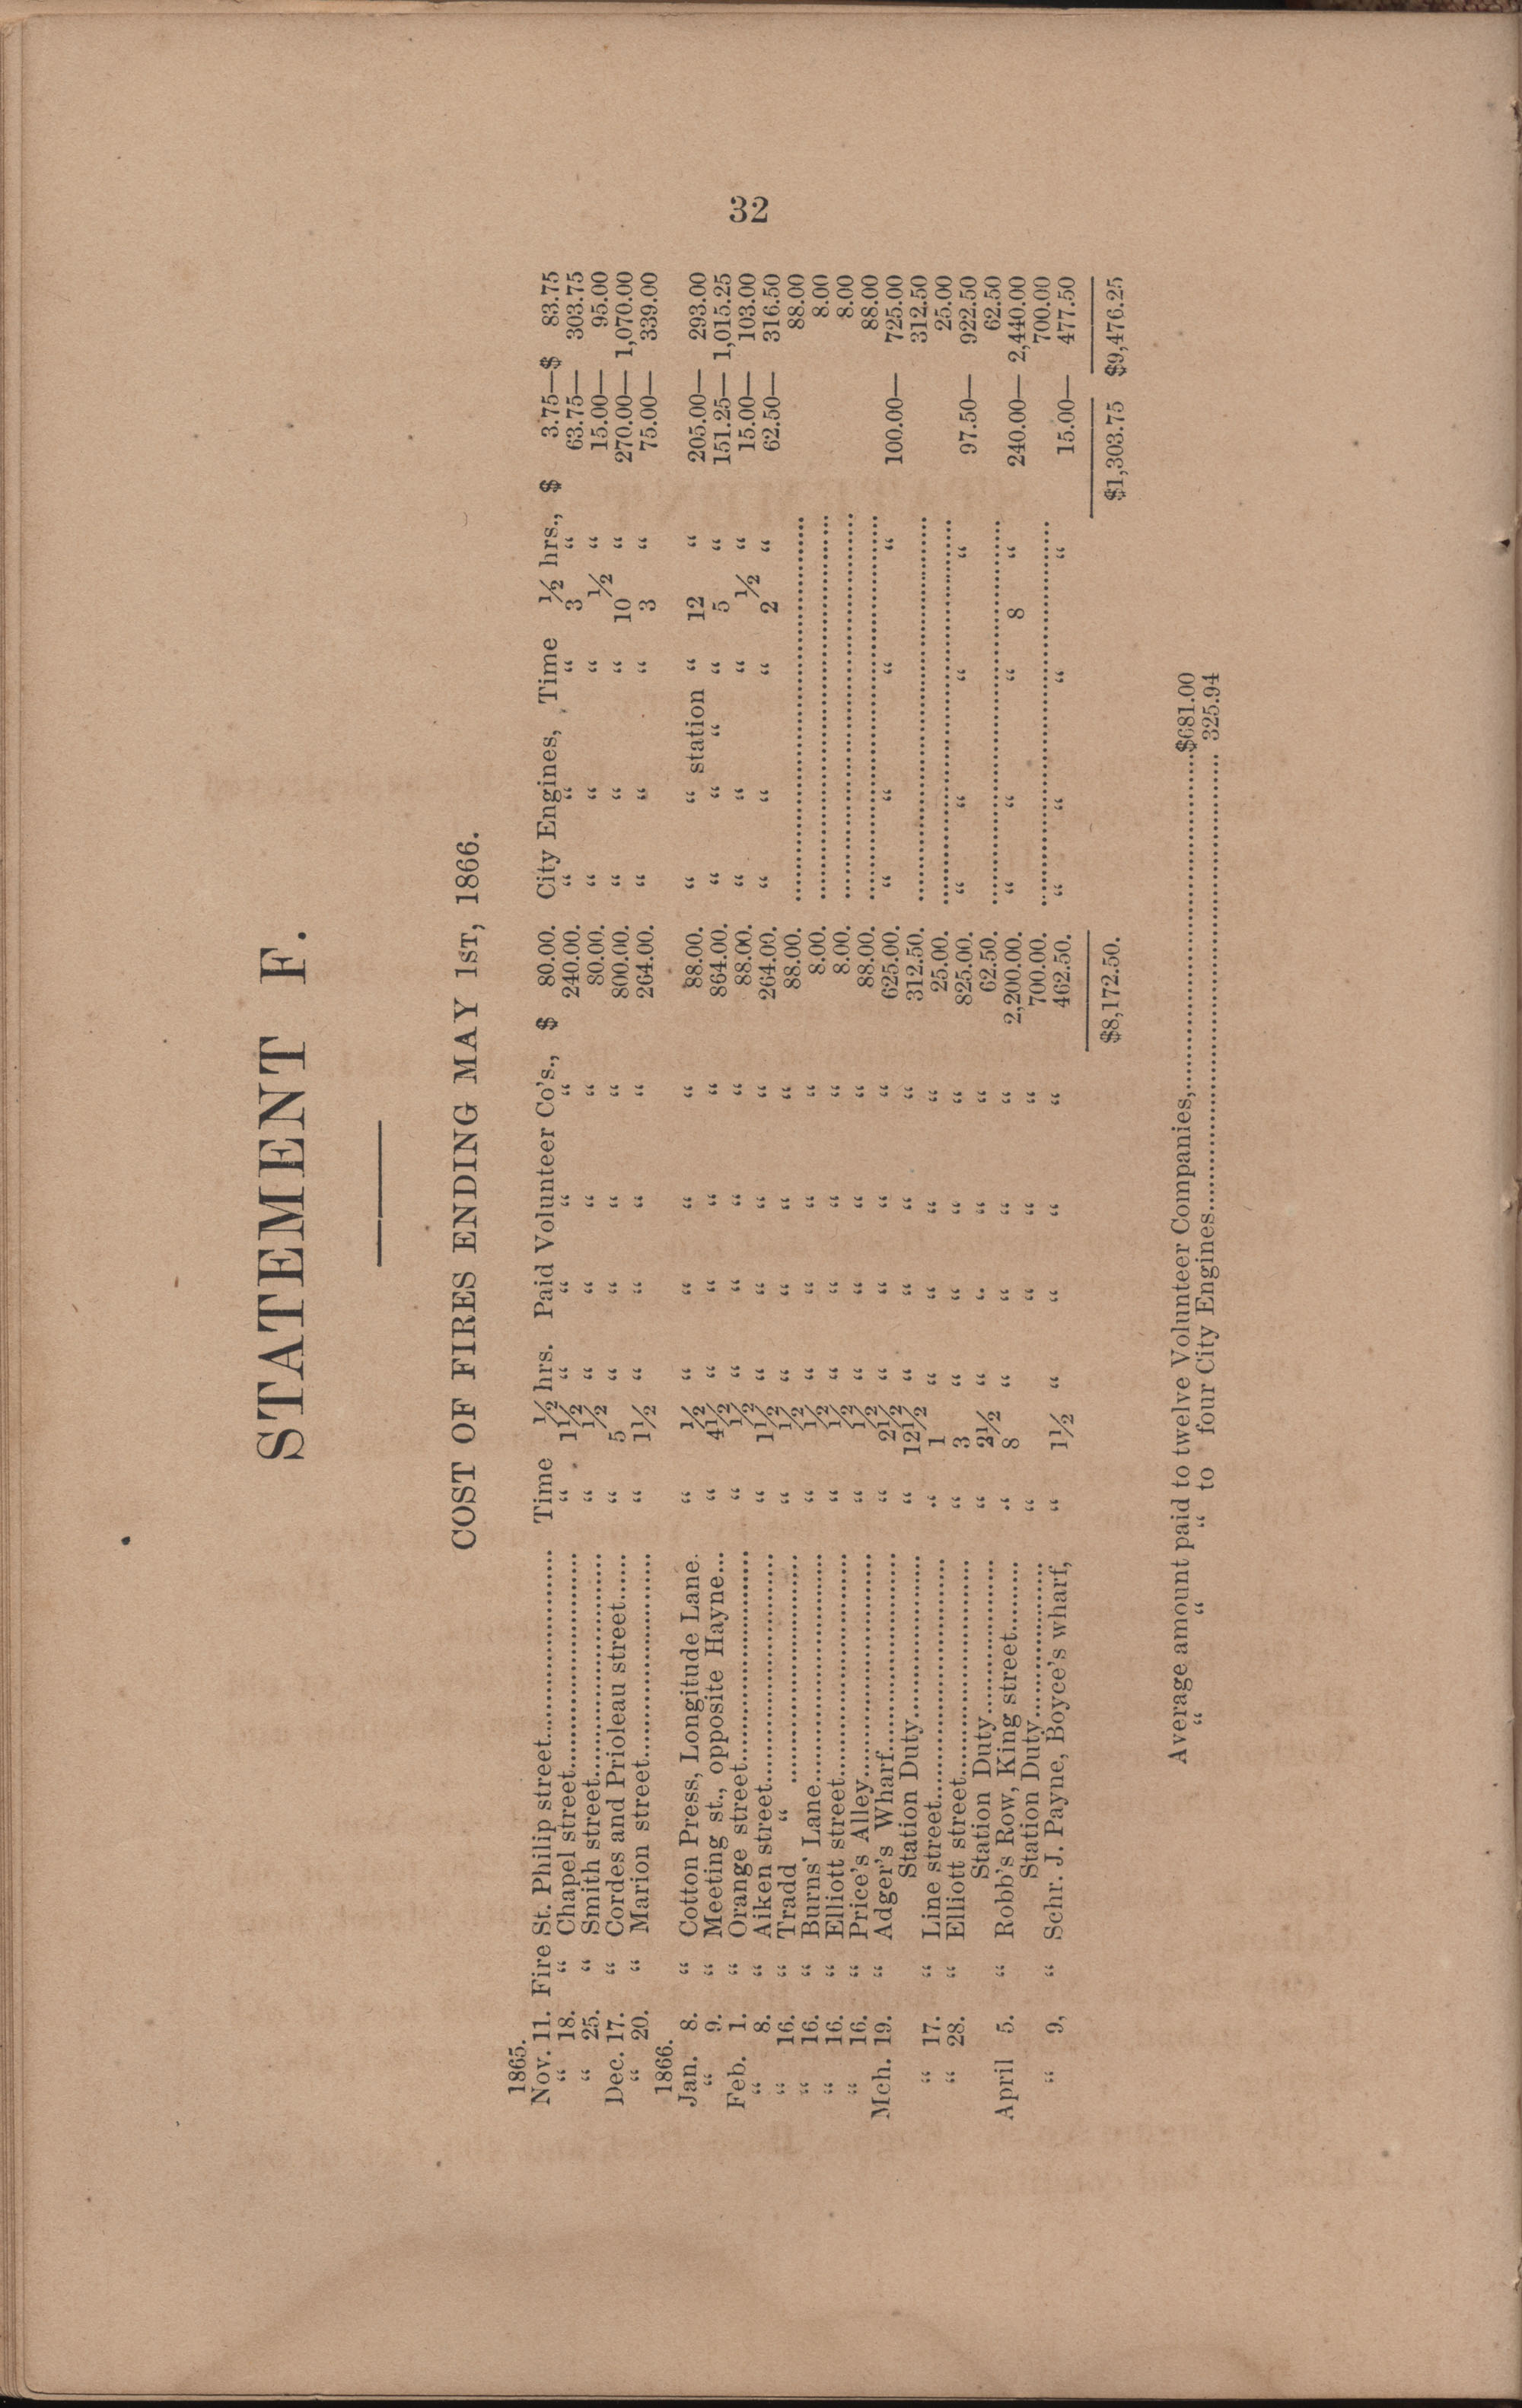 Annual Report of the Chief of the Fire Department of the City of Charleston, page 130